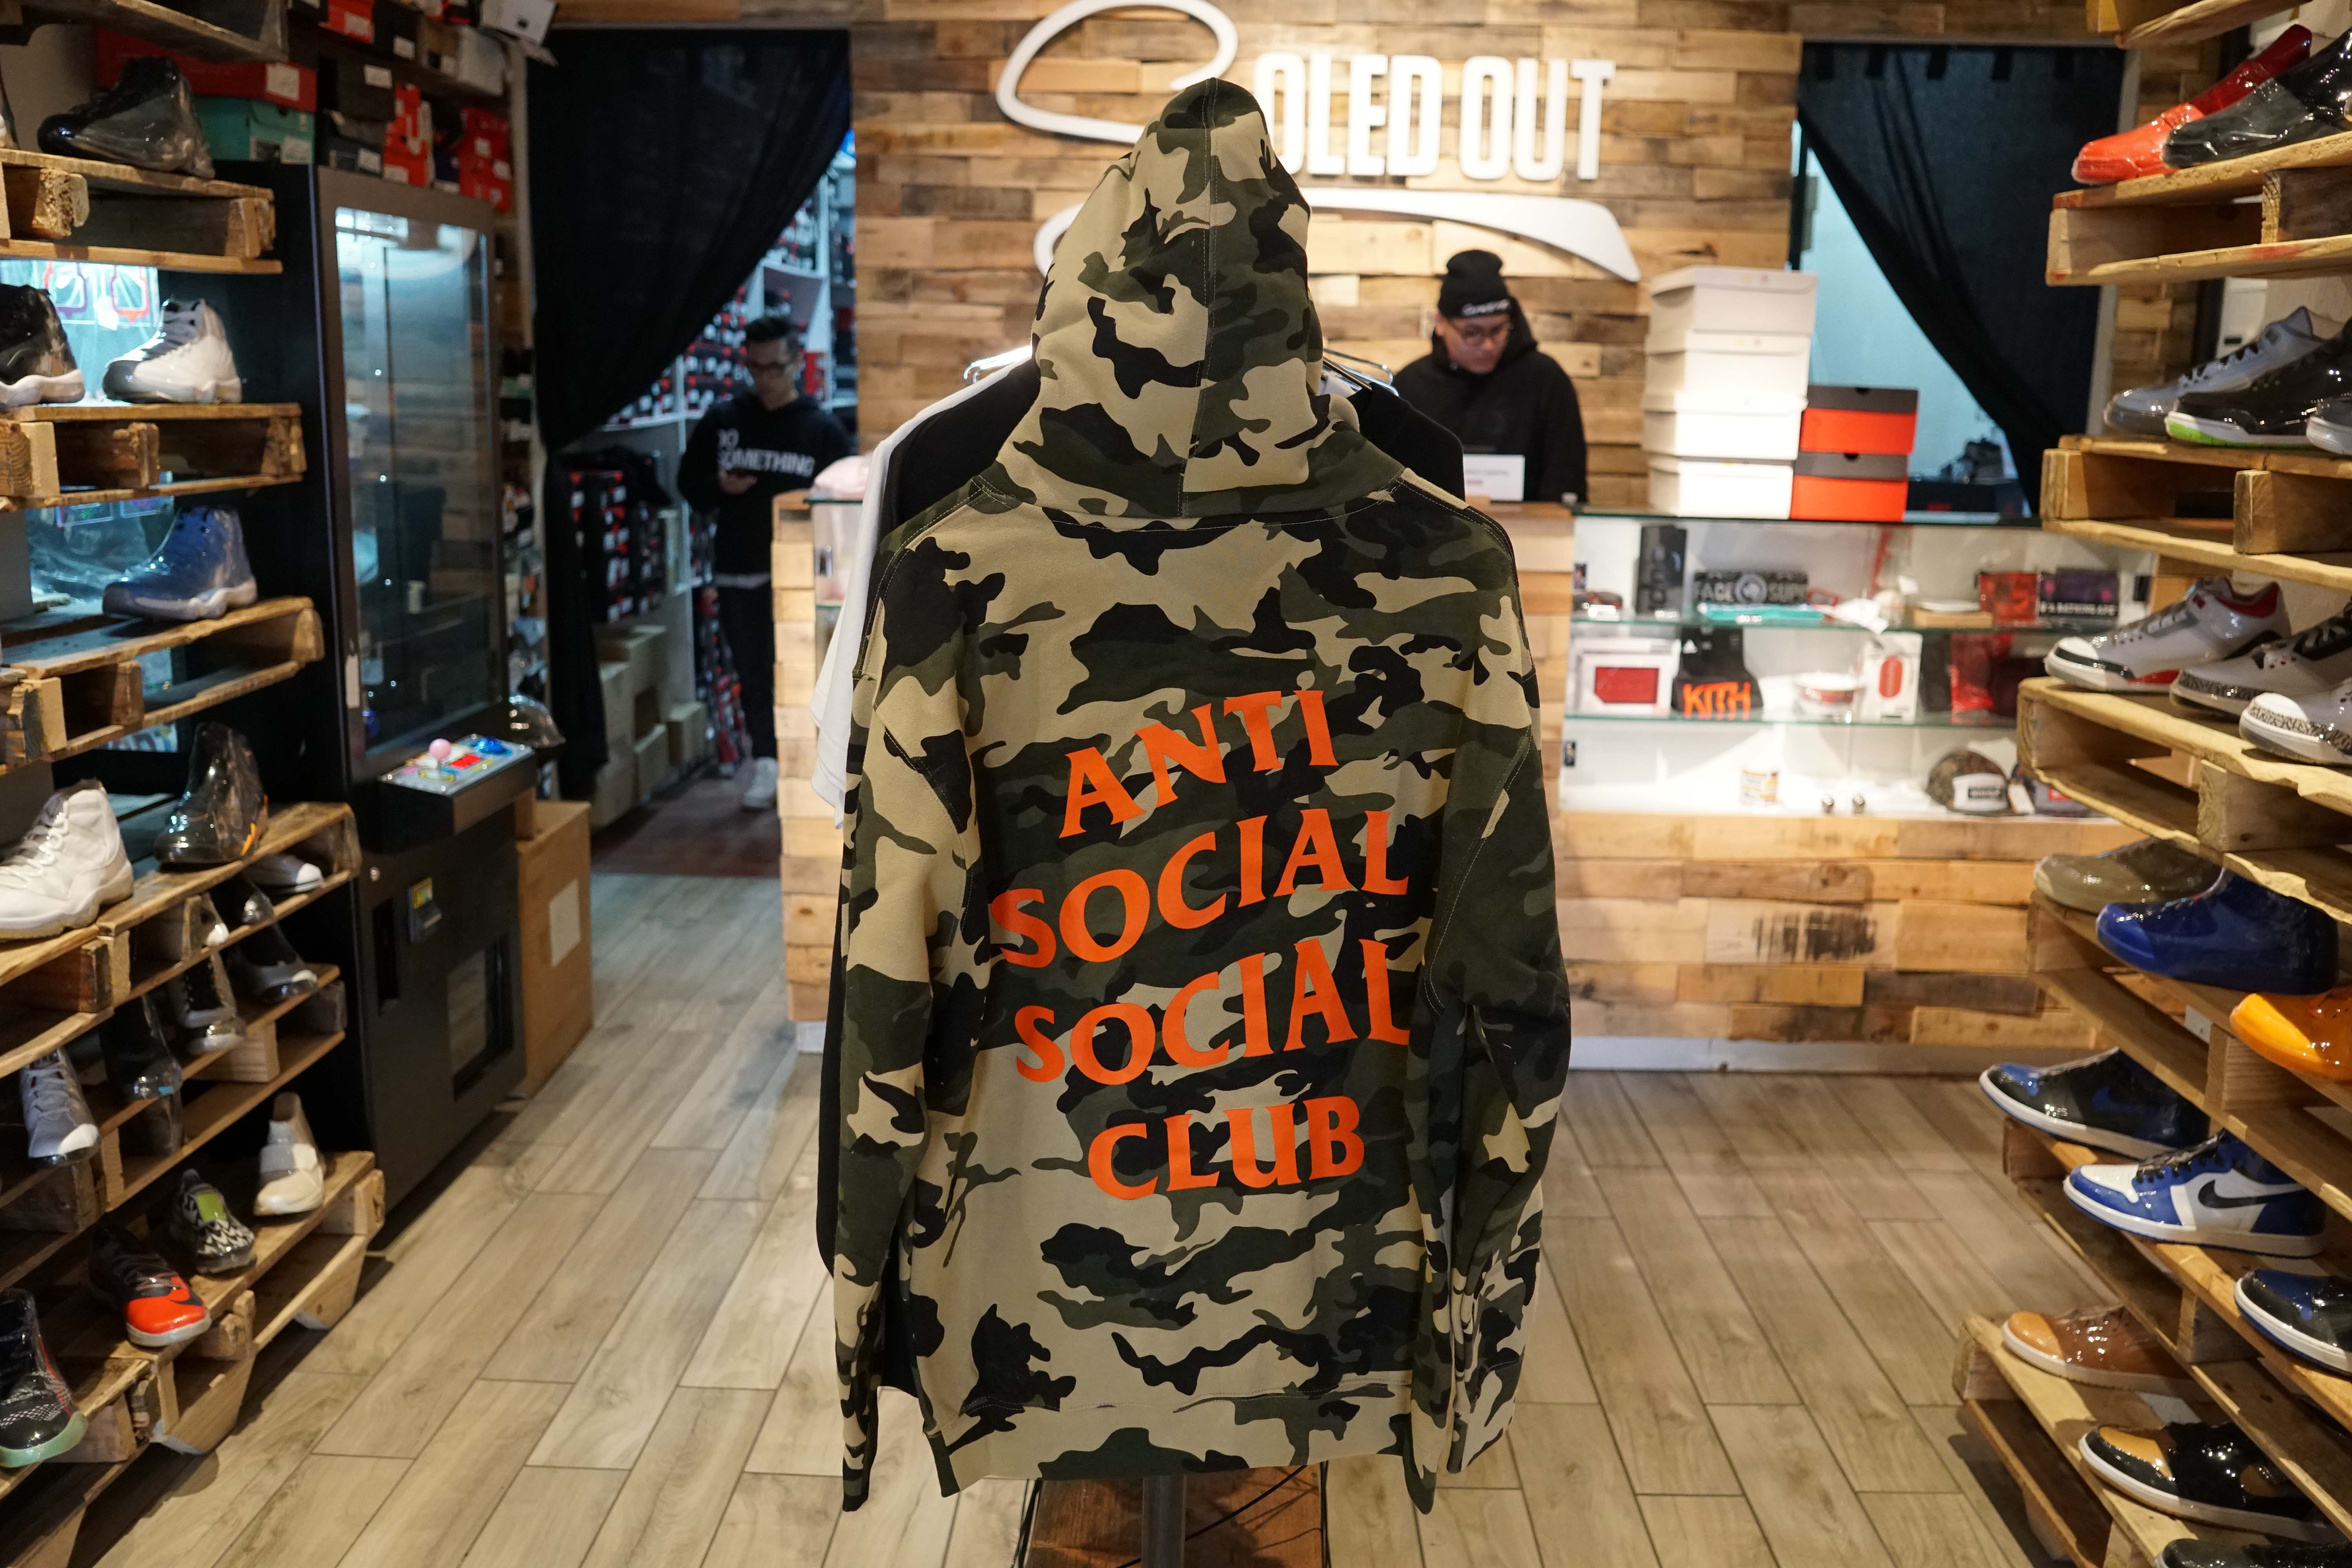 ASSC-Pullover-6TH-ST-Size-Medium-Camo-New-2998-78_17742B.jpg